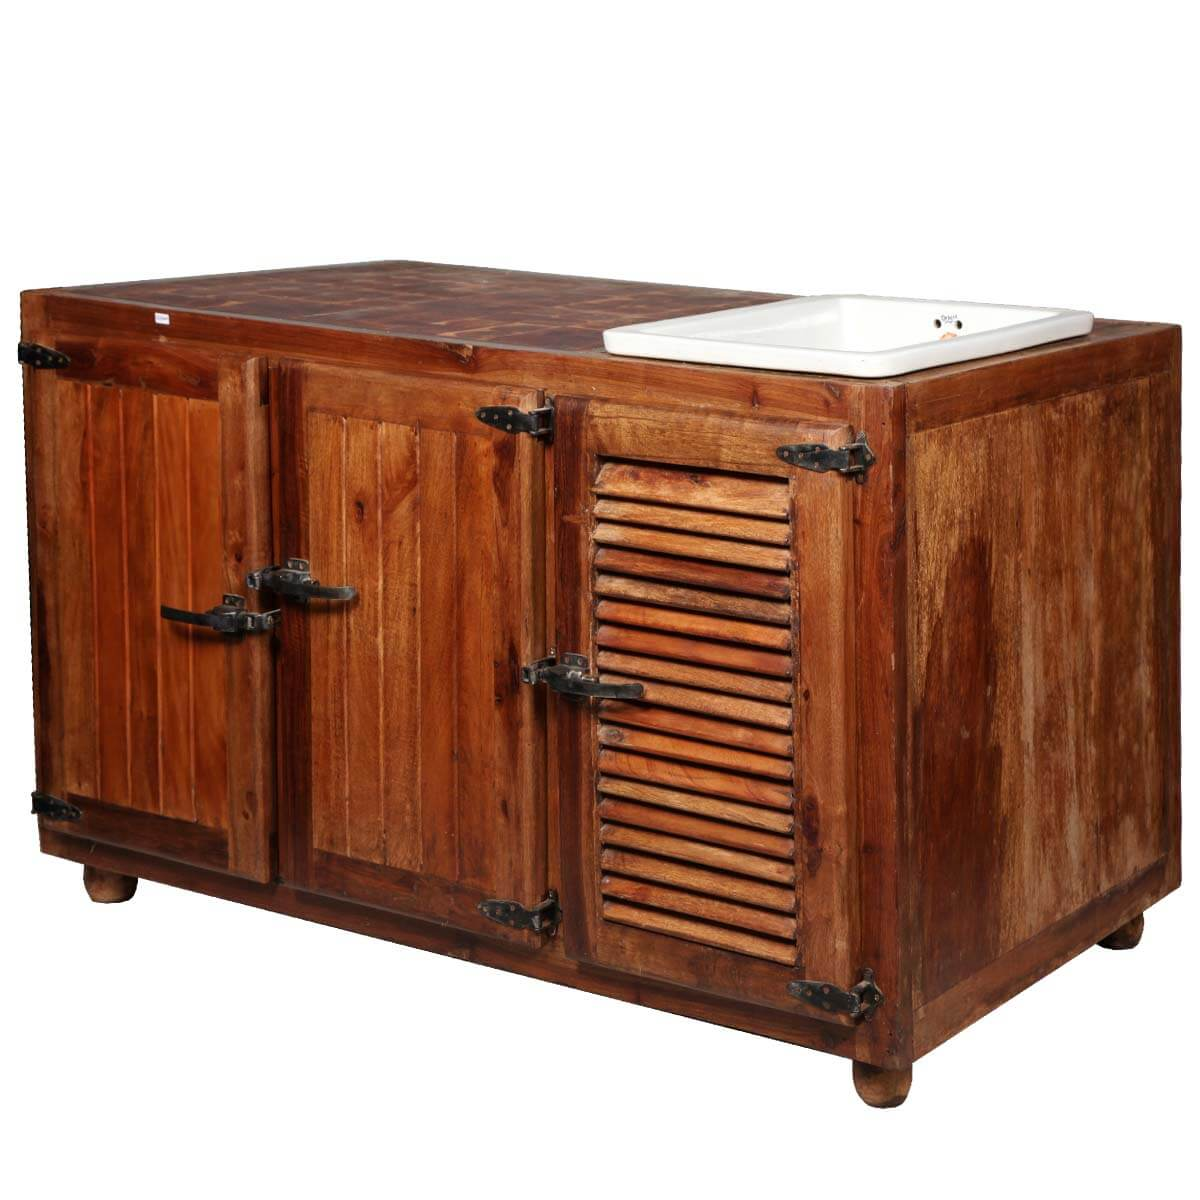 Old fashioned teak wood kitchen sink cabinet for Wood cabinets